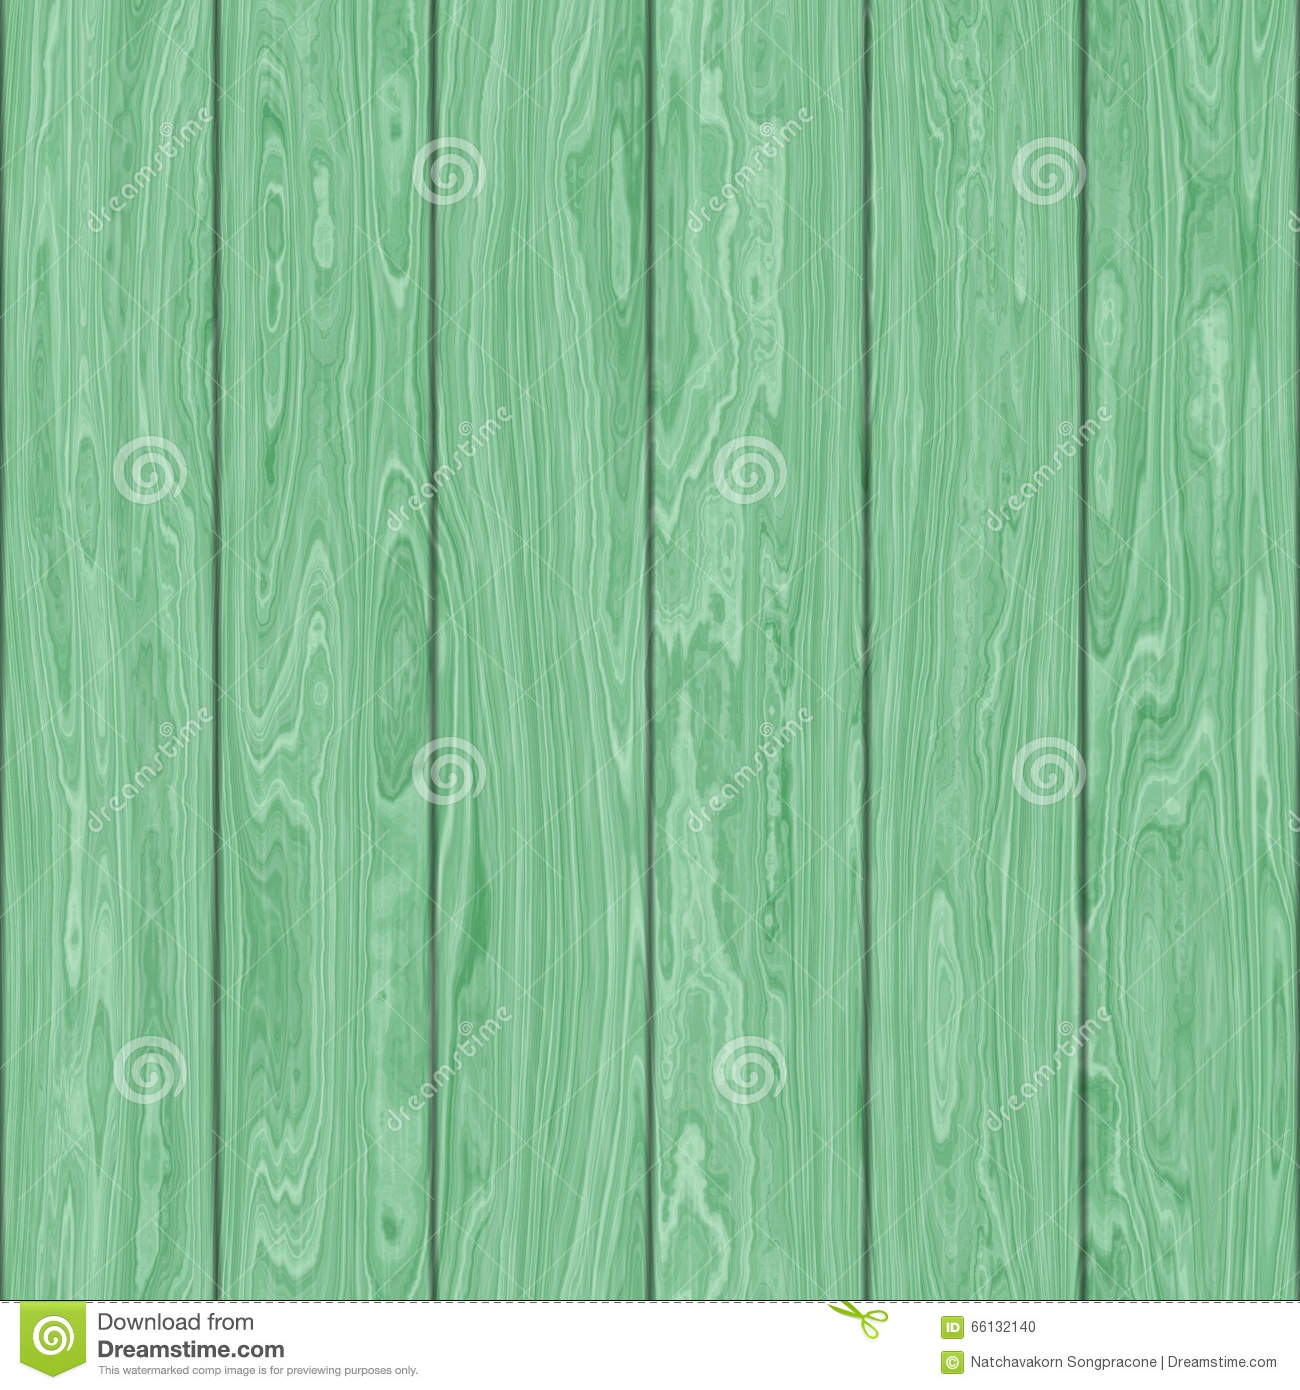 Download Seamless Wood Pallet Texture Illustration Stock